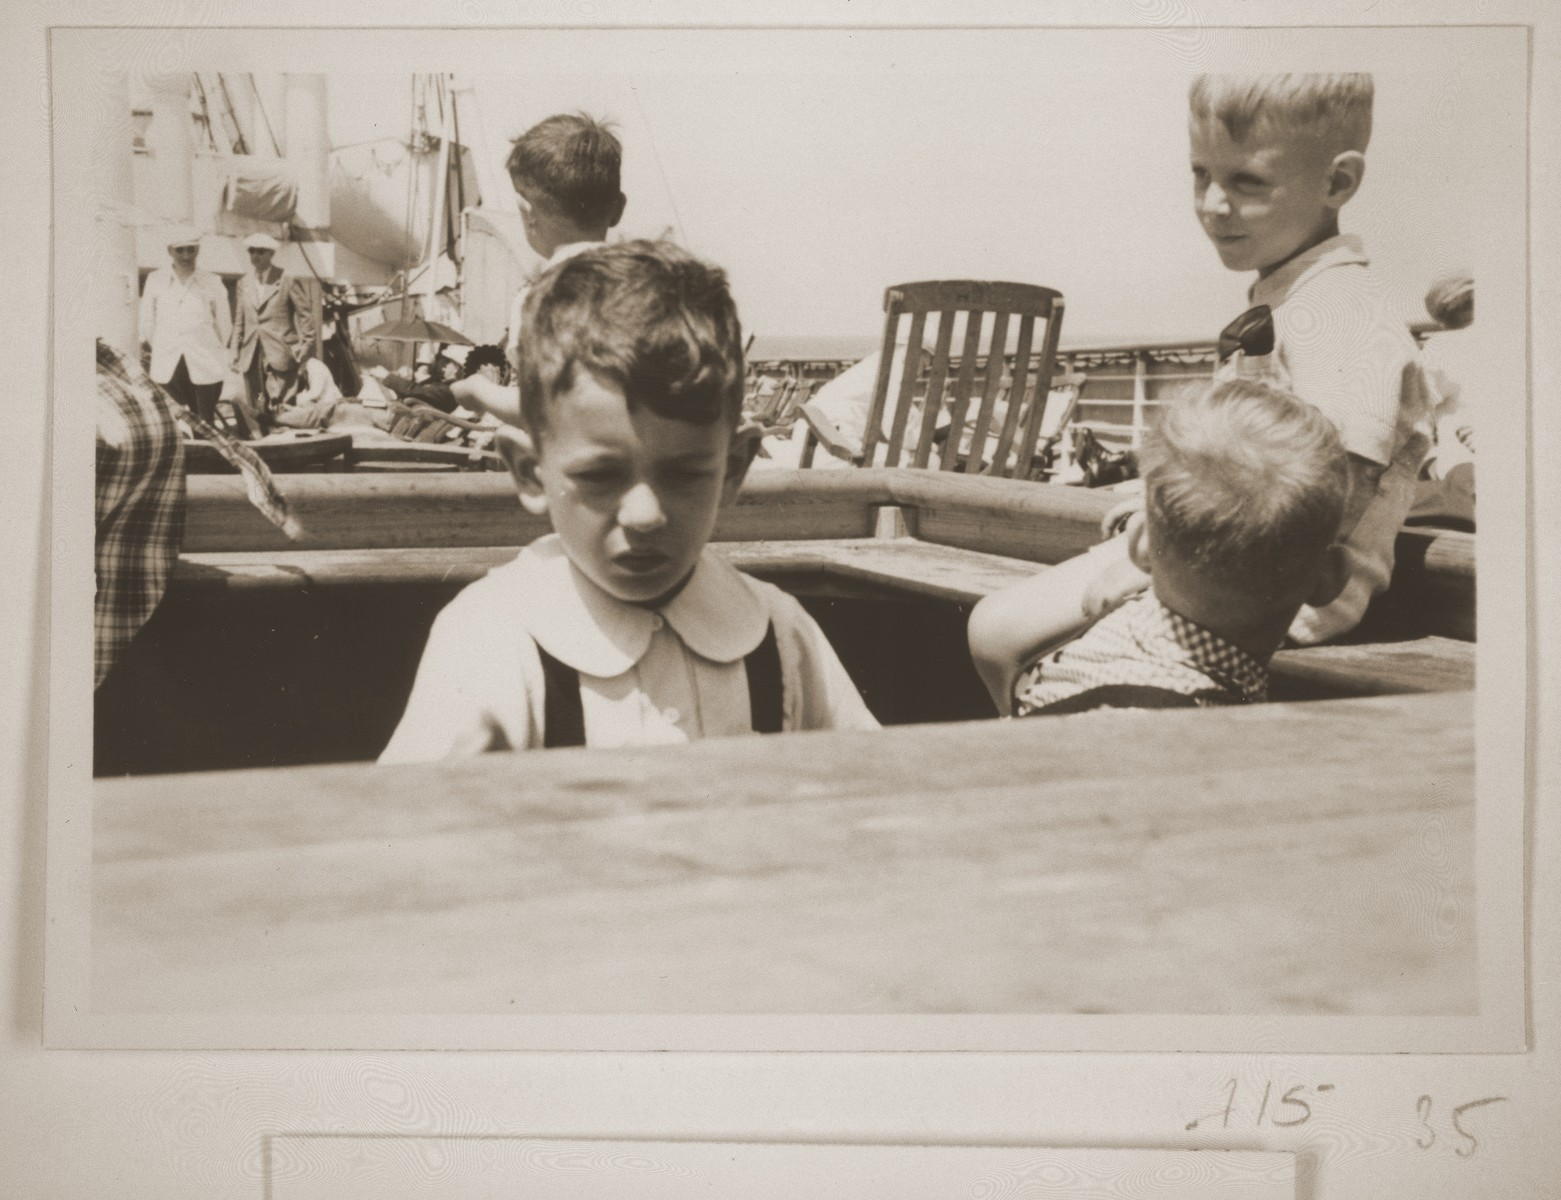 The Vendig children play on an outer deck of the MS St. Louis.